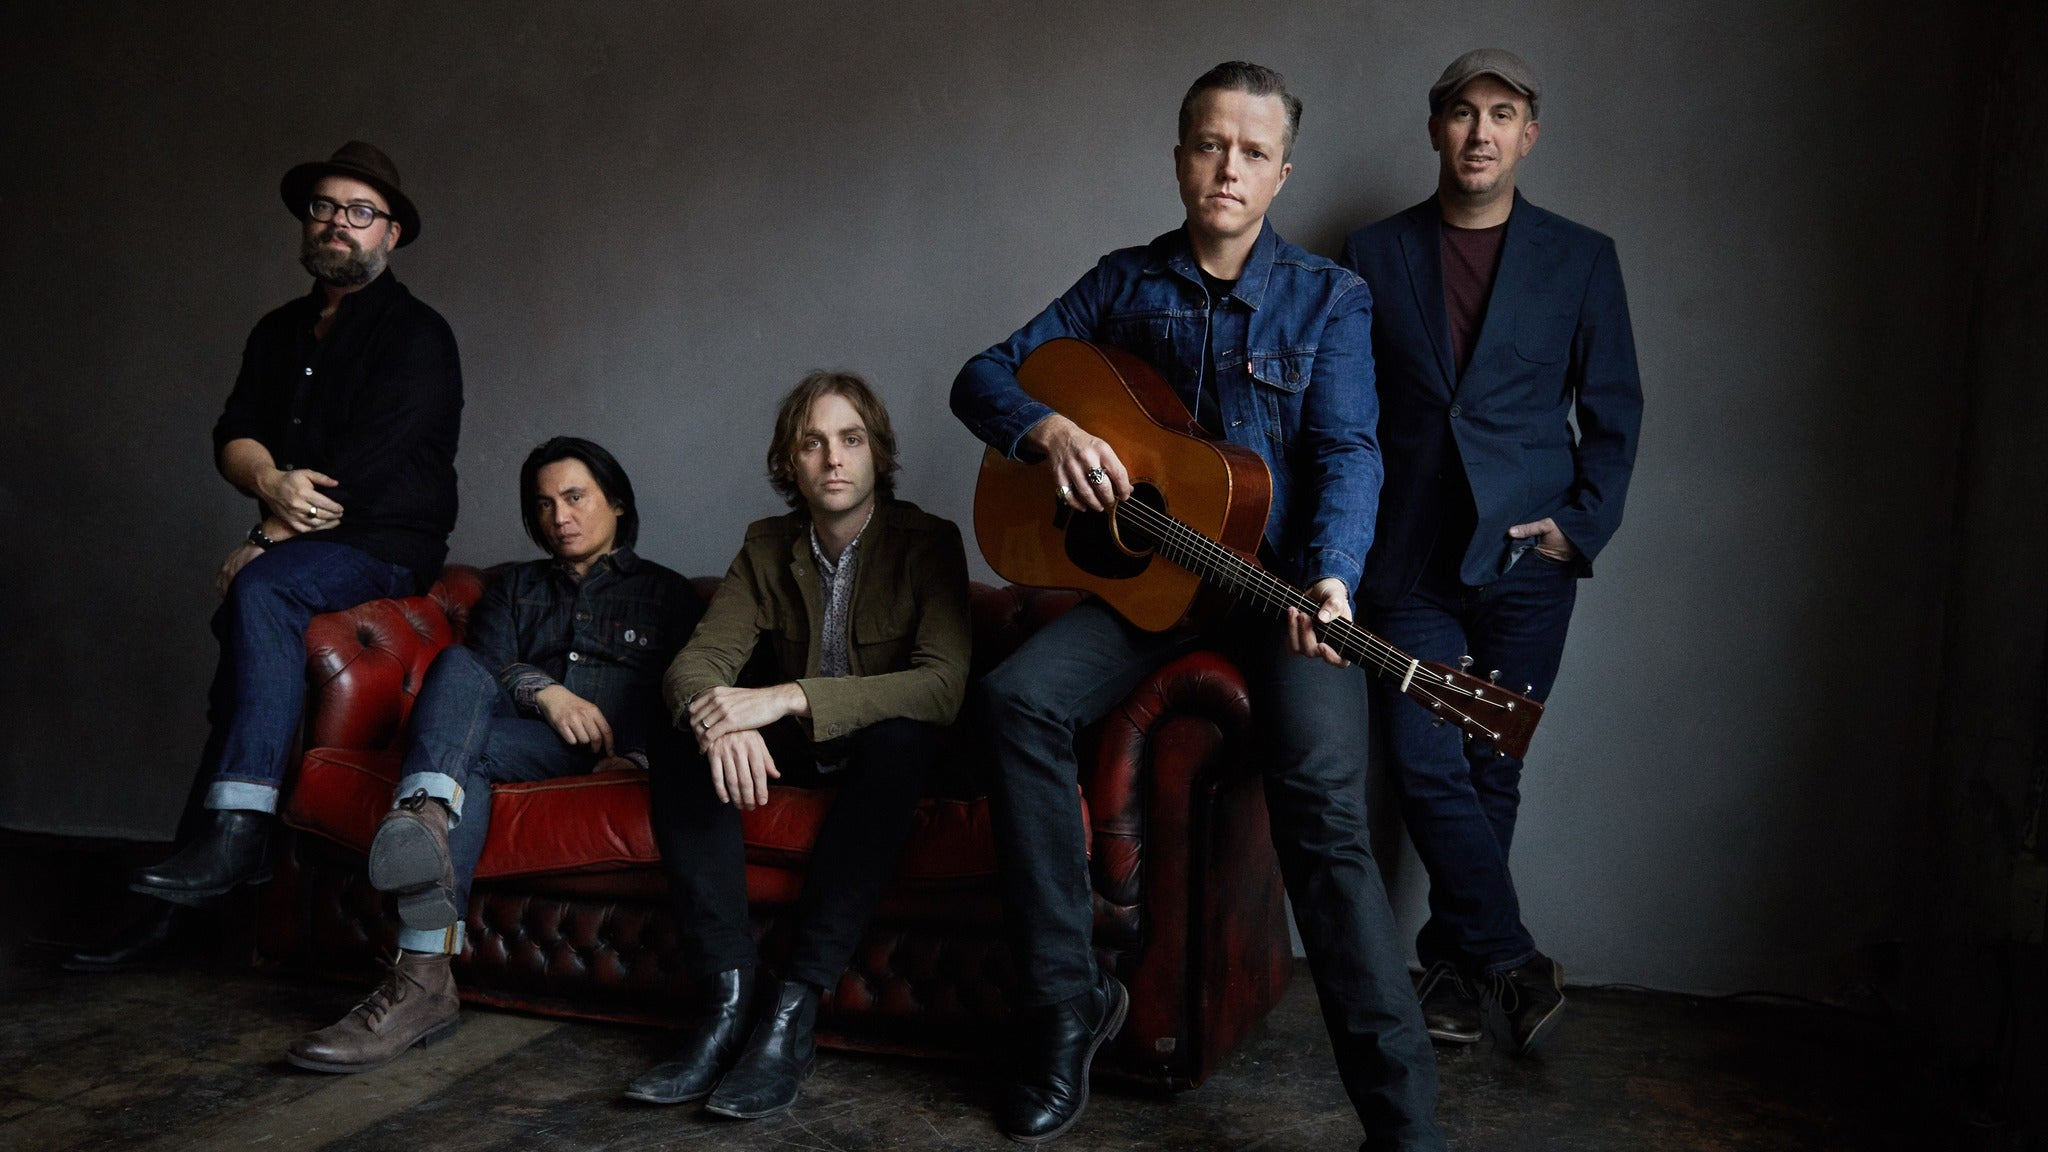 Jason Isbell and the 400 Unit at Robinson Performance Hall